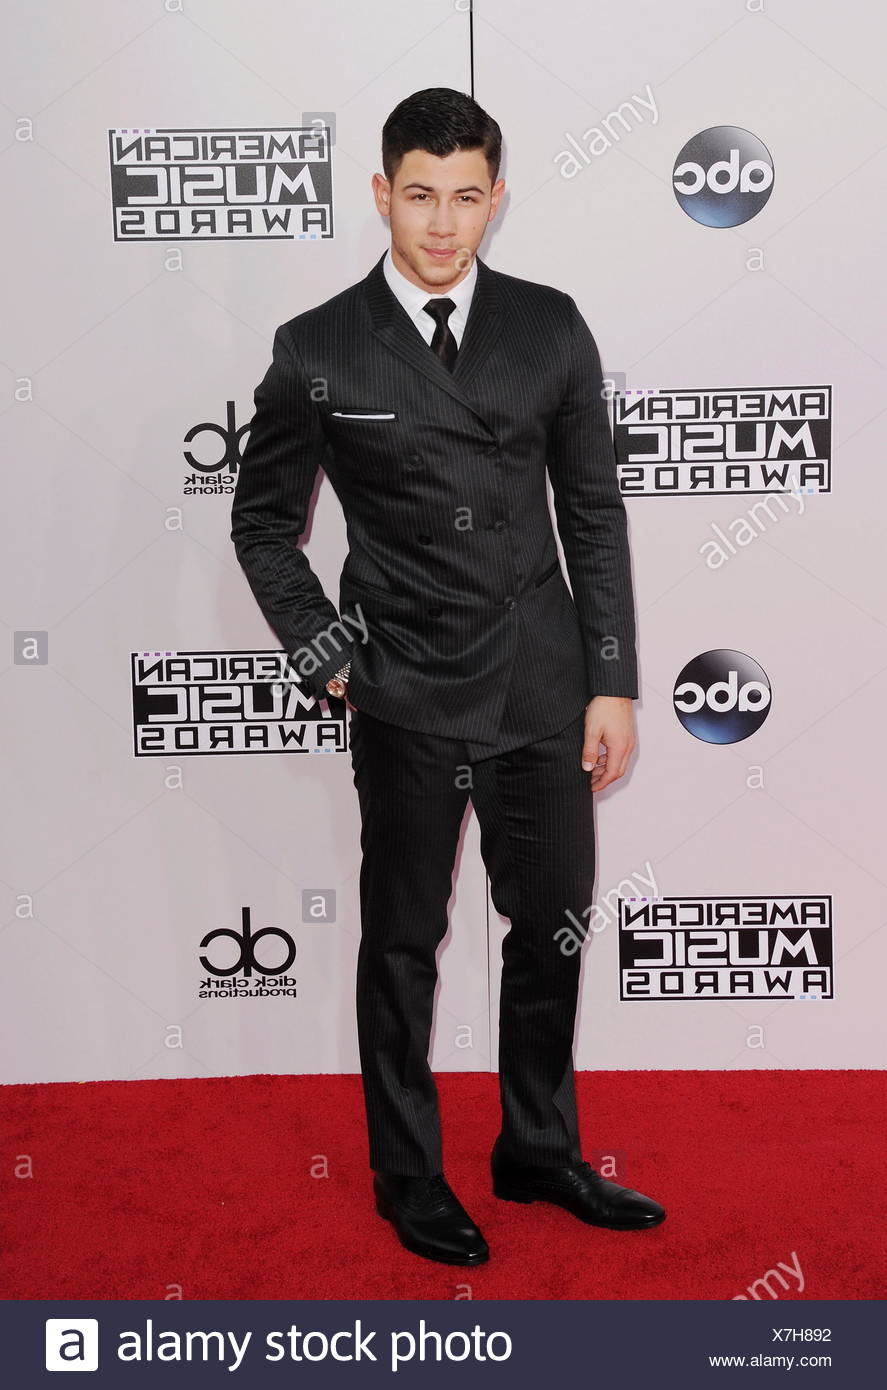 Recording artist Joe Jonas arrives at the 2014 American Music Awards at Nokia Theatre L.A. Live on November 23, 2014 in Los Angeles, California., Additional-Rights-Clearances-NA Stock Photo